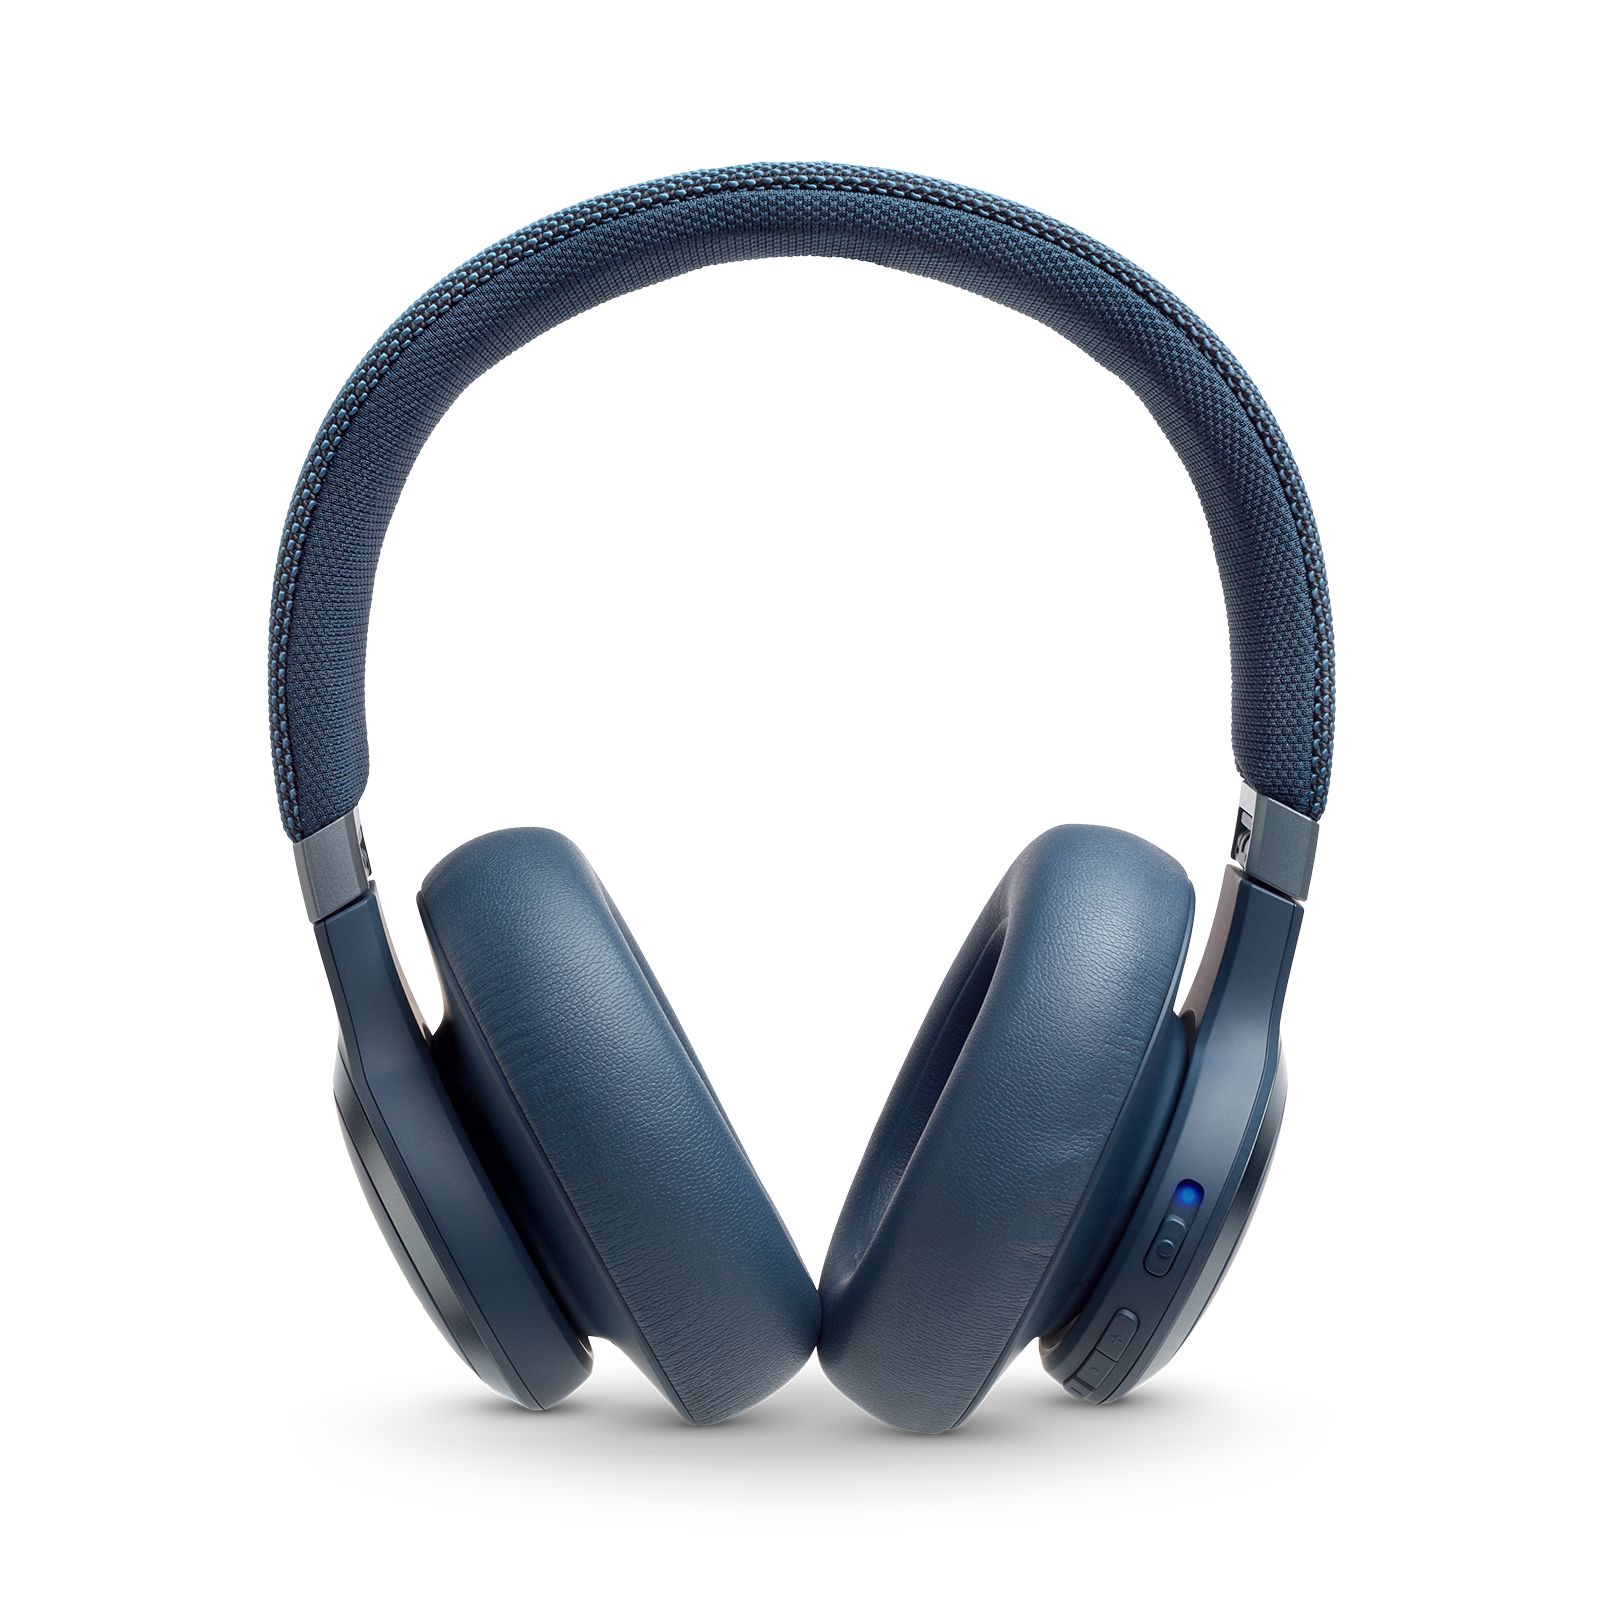 JBL LIVE 650BTNC - Blue - Wireless Over-Ear Noise-Cancelling Headphones - Front